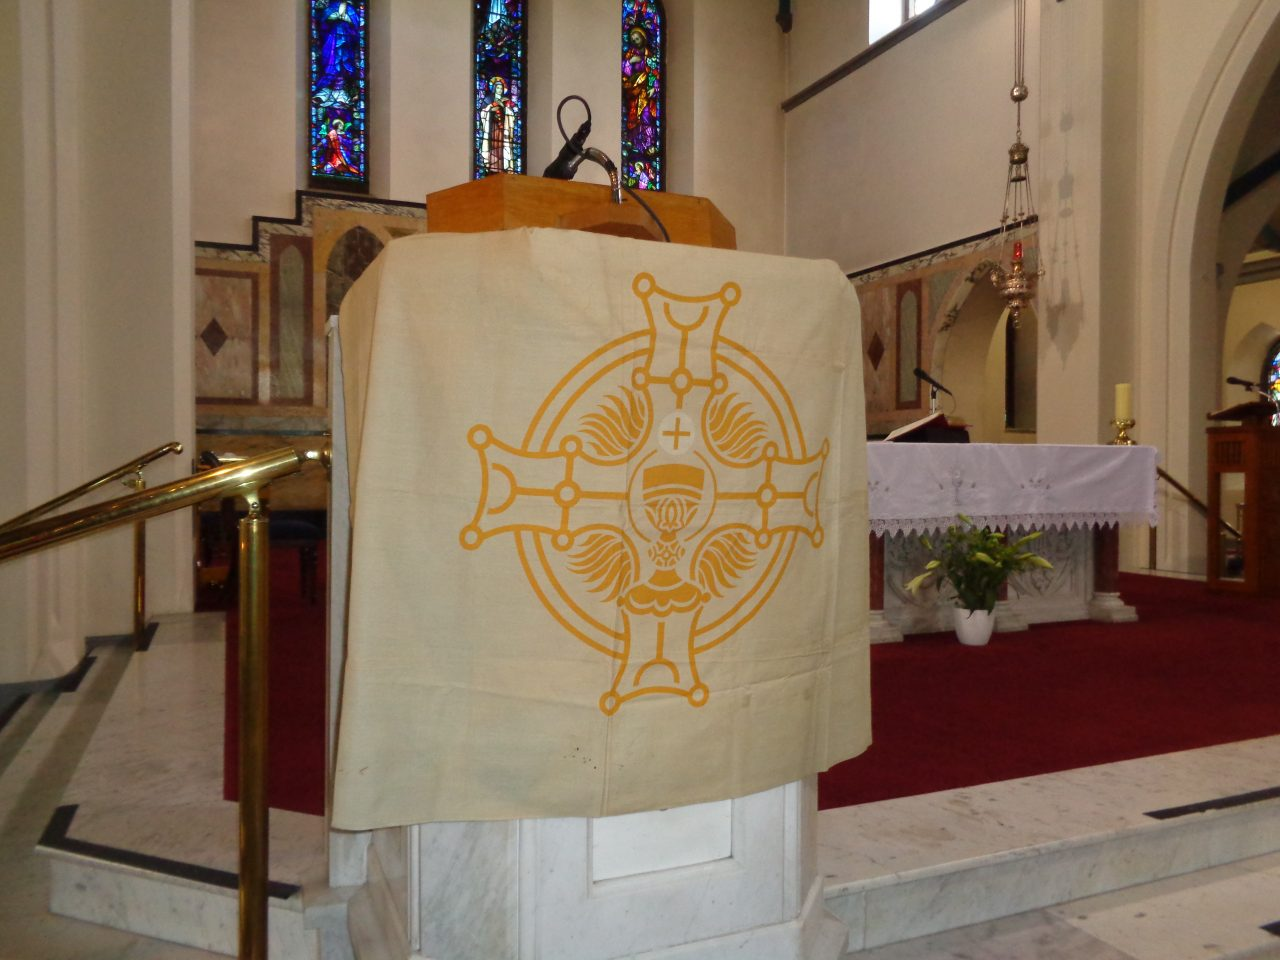 Ambo Banner used during the Eucharistic Congress in 1932